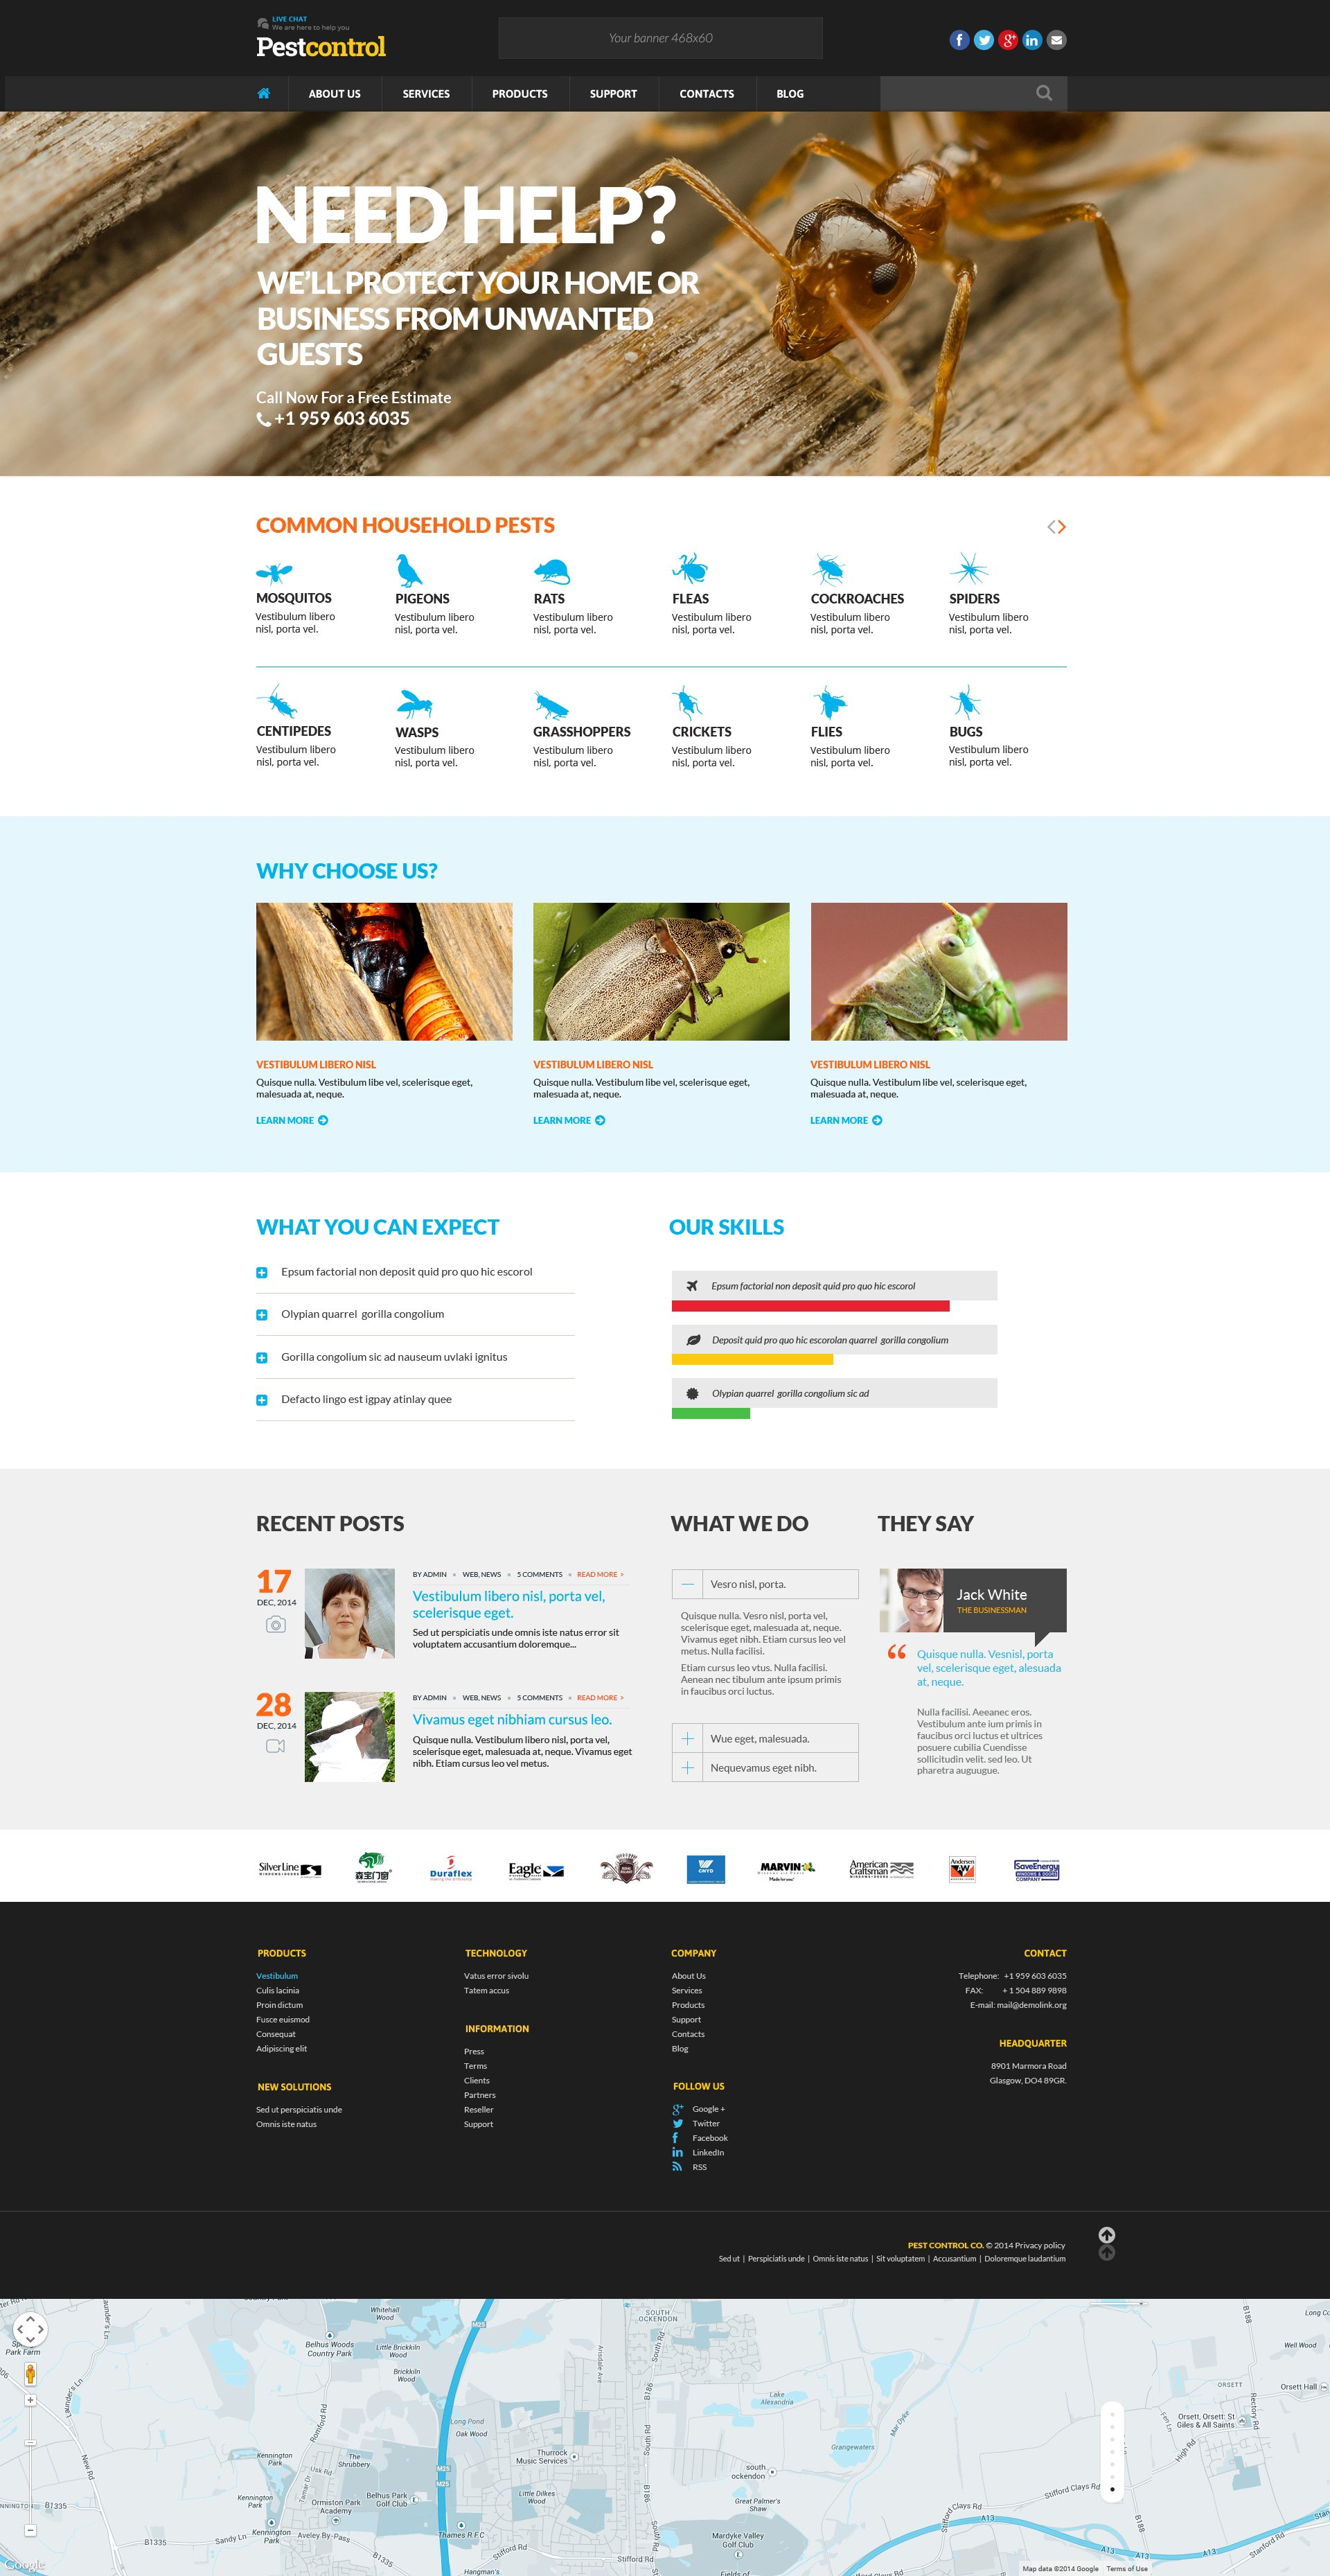 The Pest Control Responsive Javascript Animated Design 50731 One Of Best Website Templates